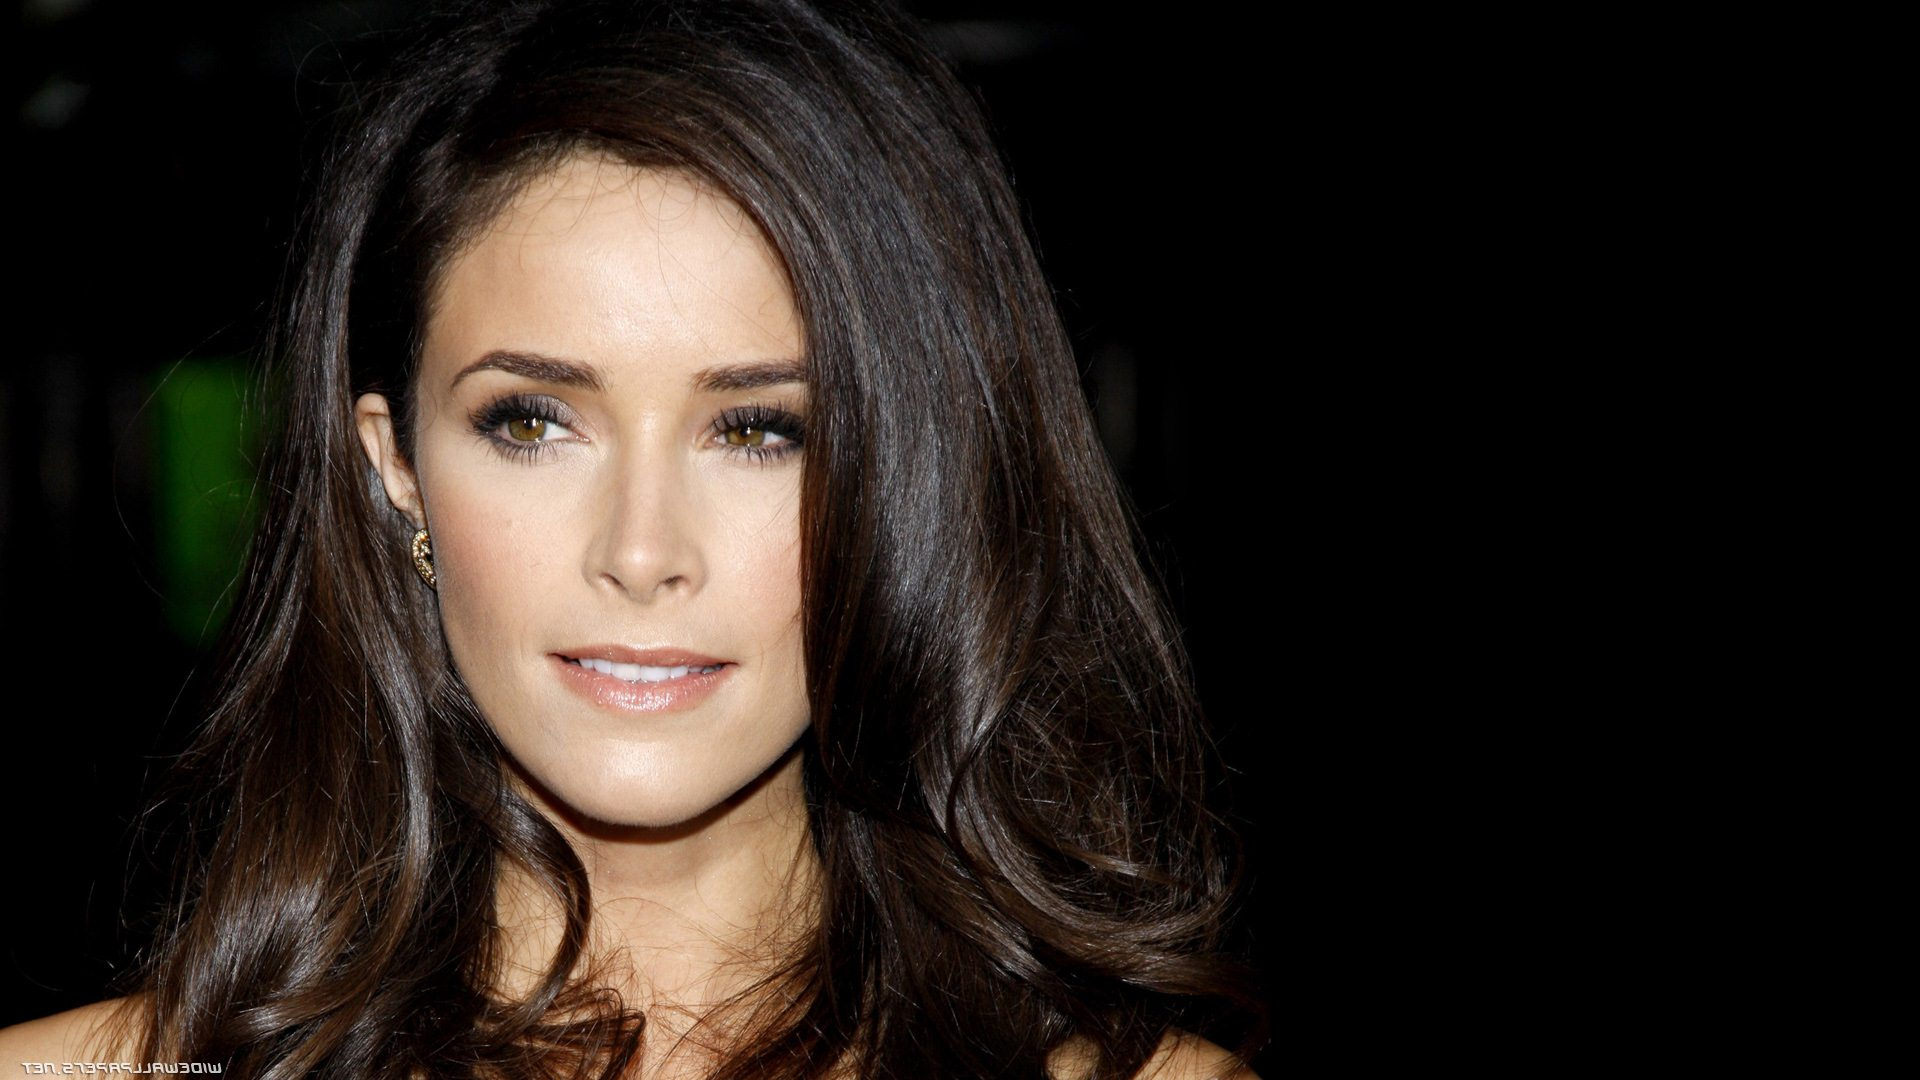 1920x1080 - Abigail Spencer Wallpapers 2